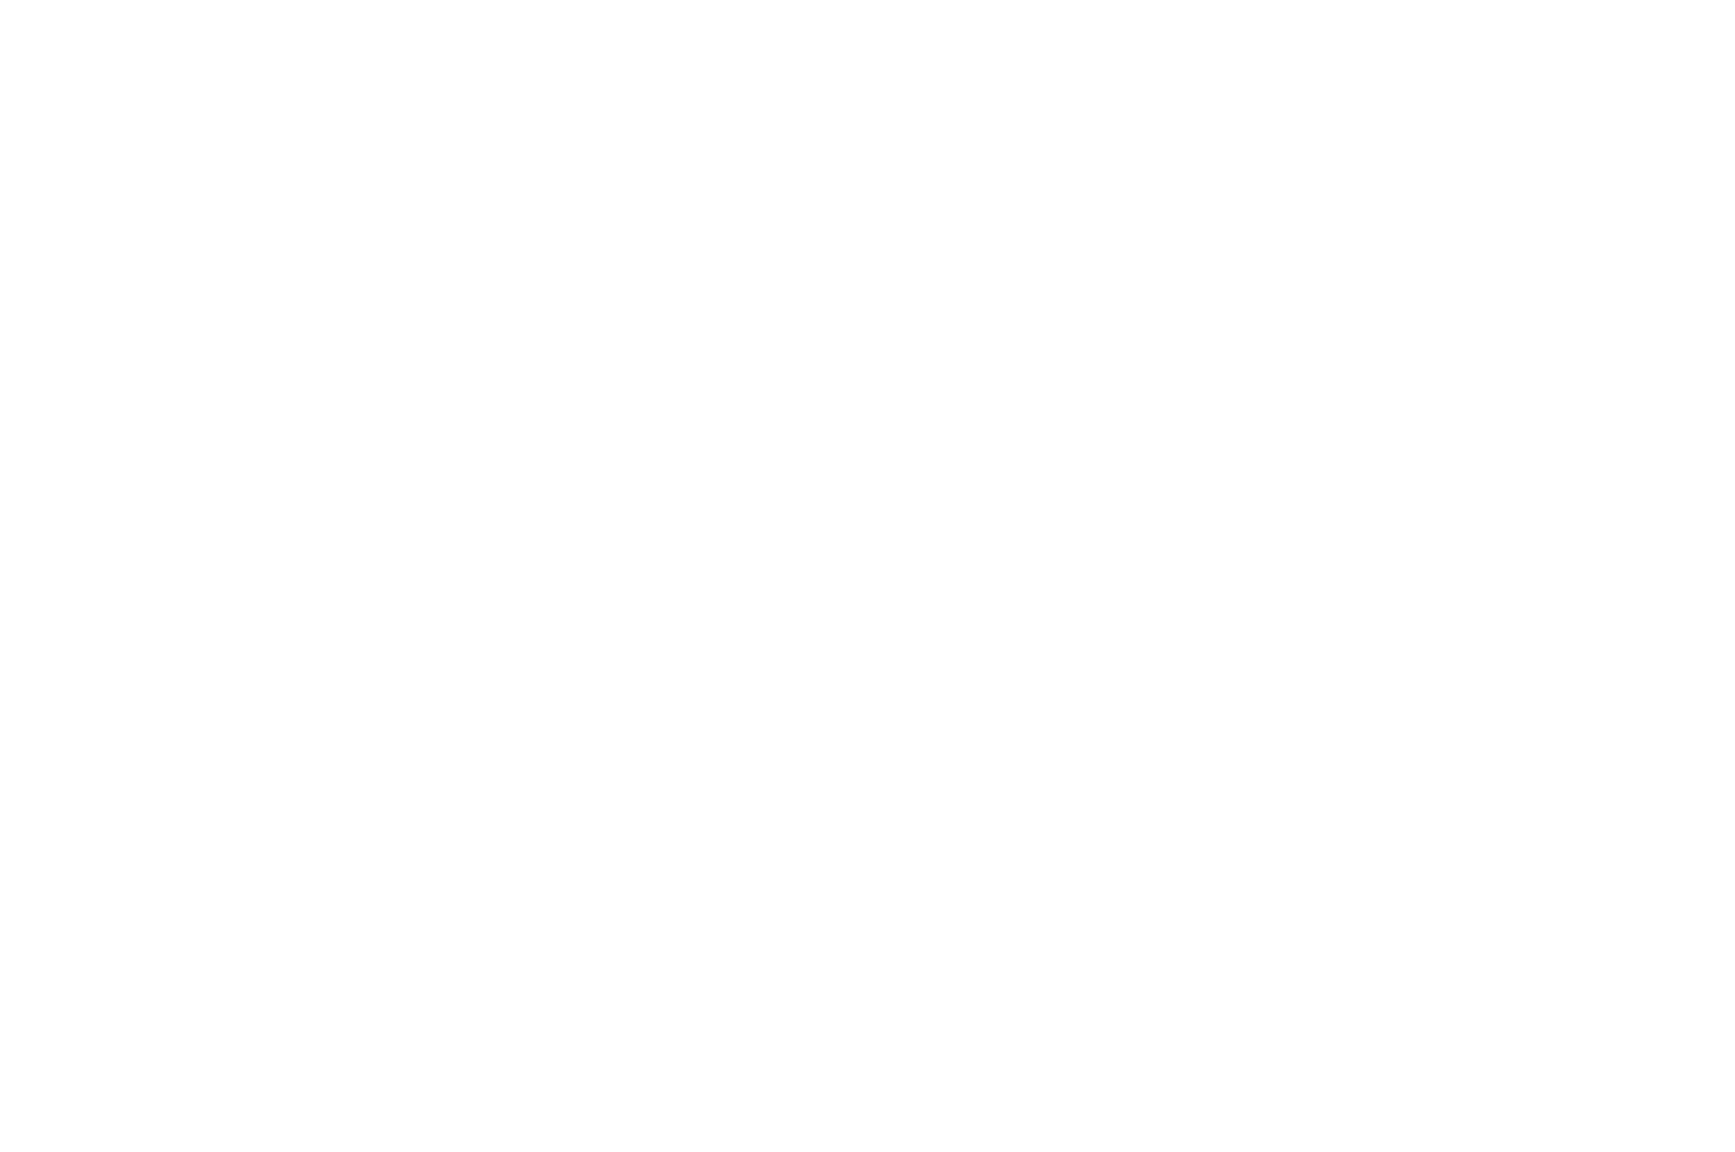 OFFICIAL SELECTION - Charleston International Film Festival - 2013.png